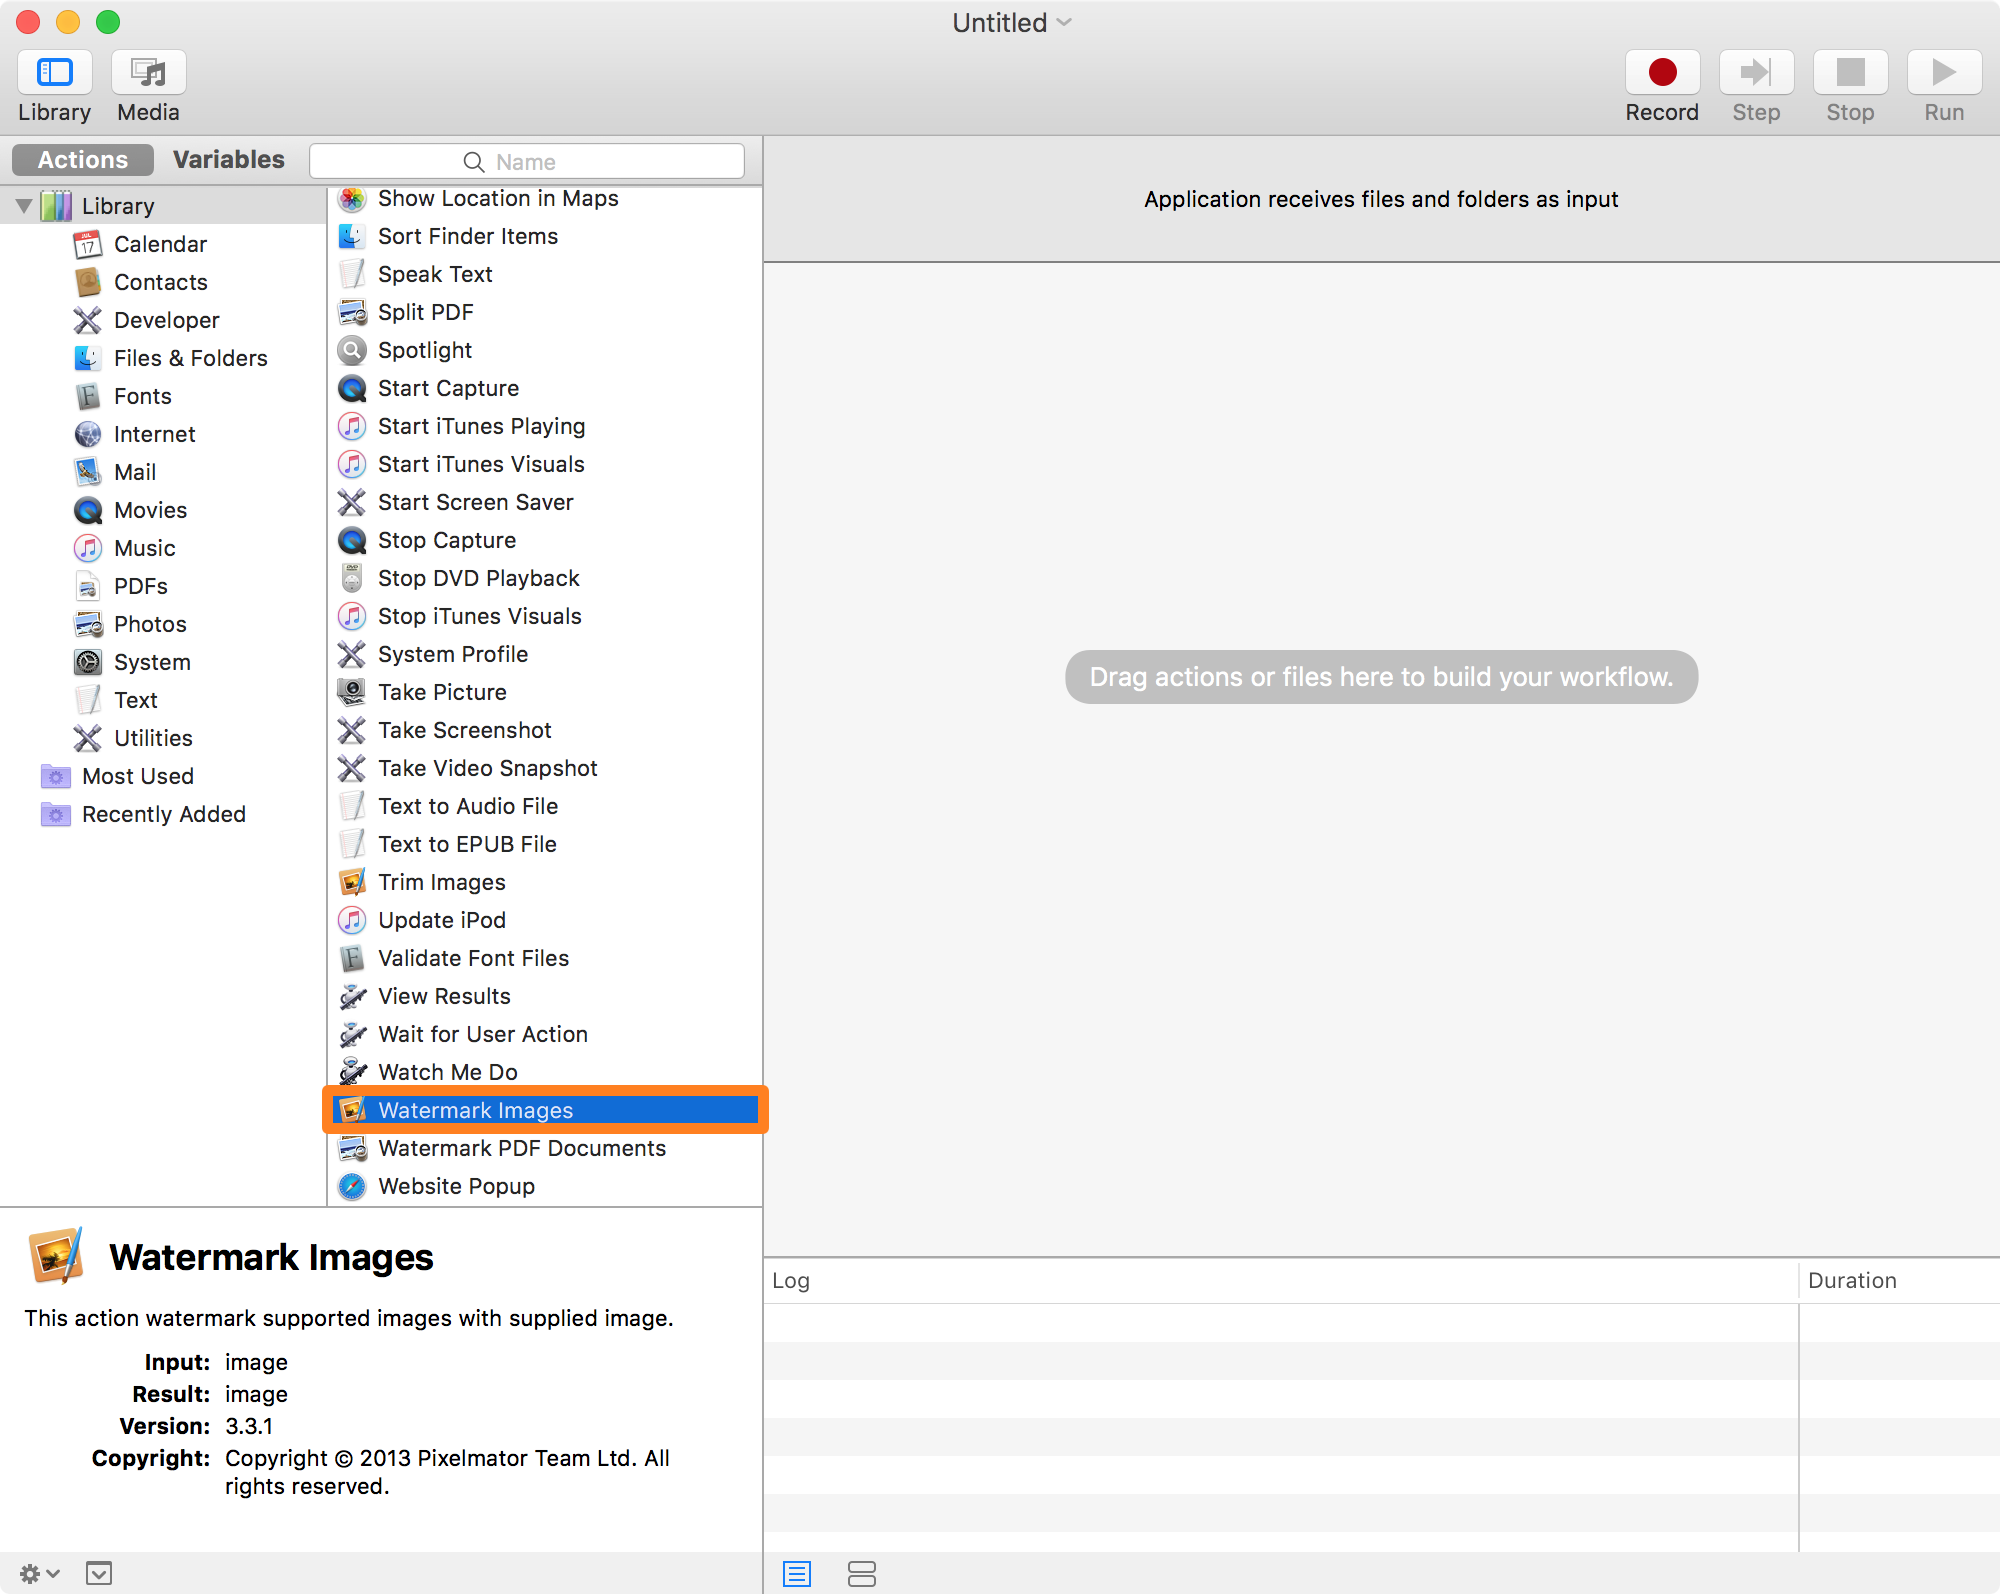 Watermark Images Action in Automator